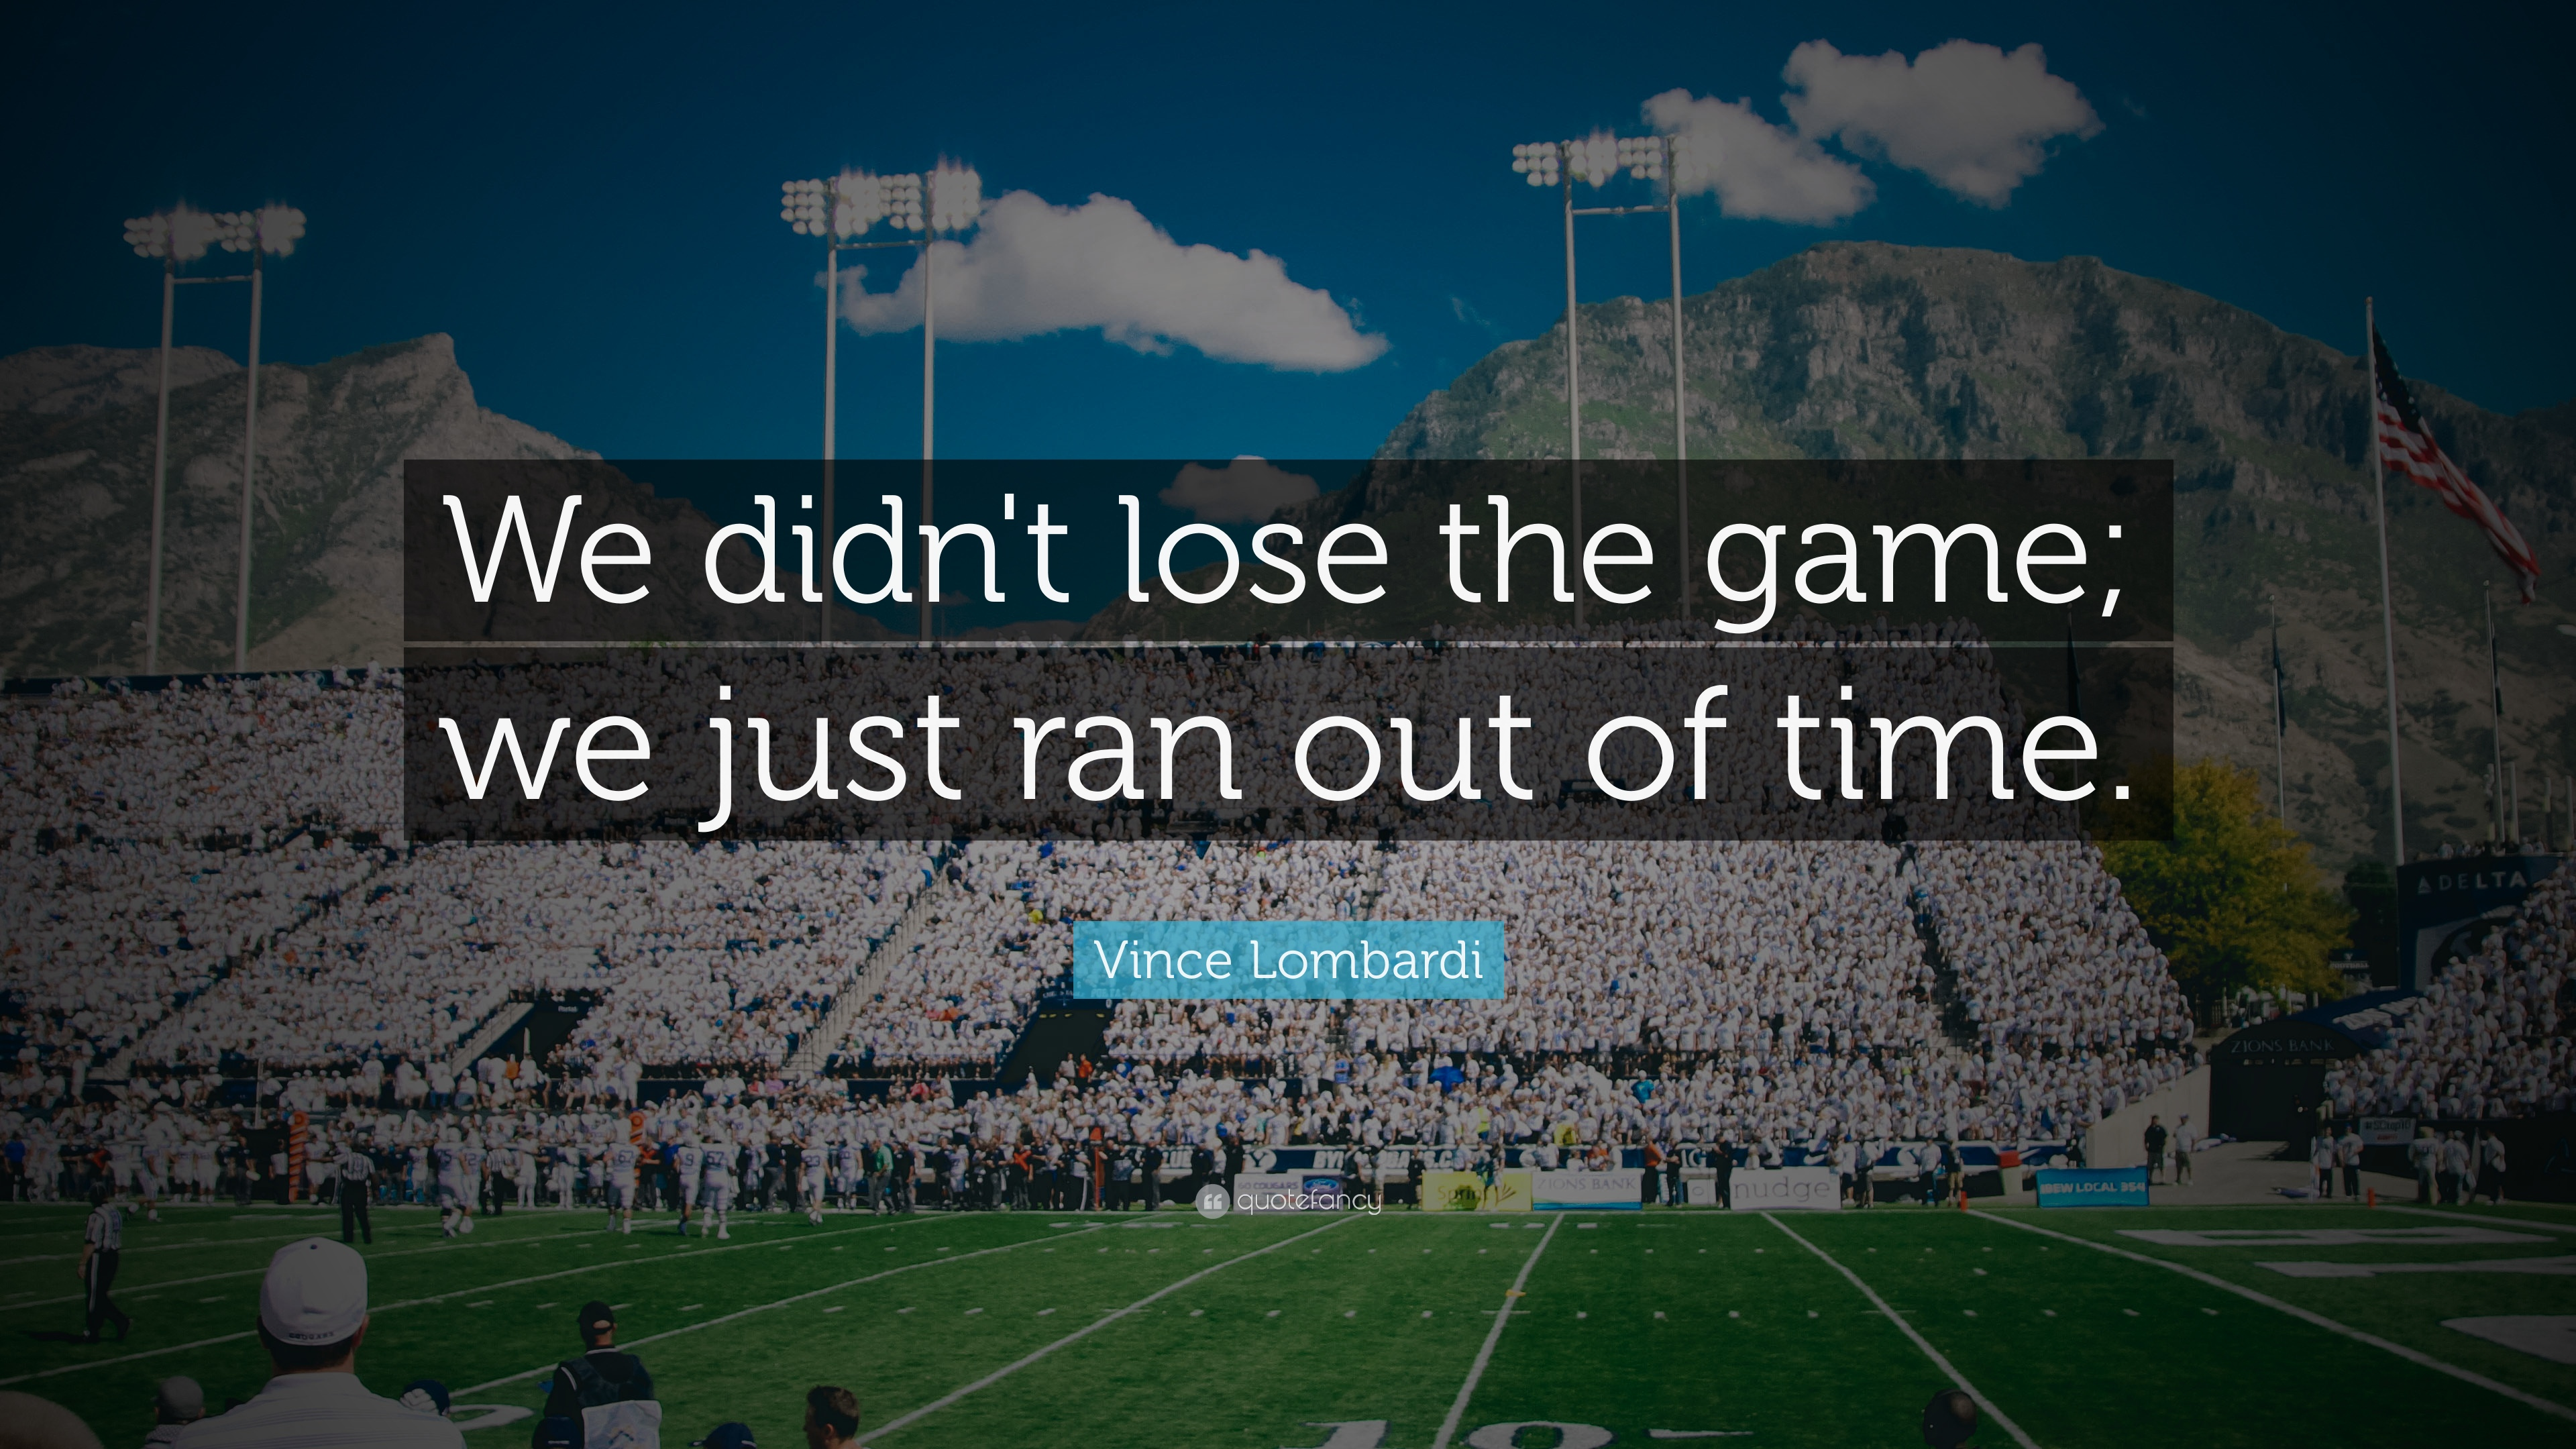 vince lombardi quote we didn t lose the game we just ran out of time 18 wallpapers quotefancy vince lombardi quote we didn t lose